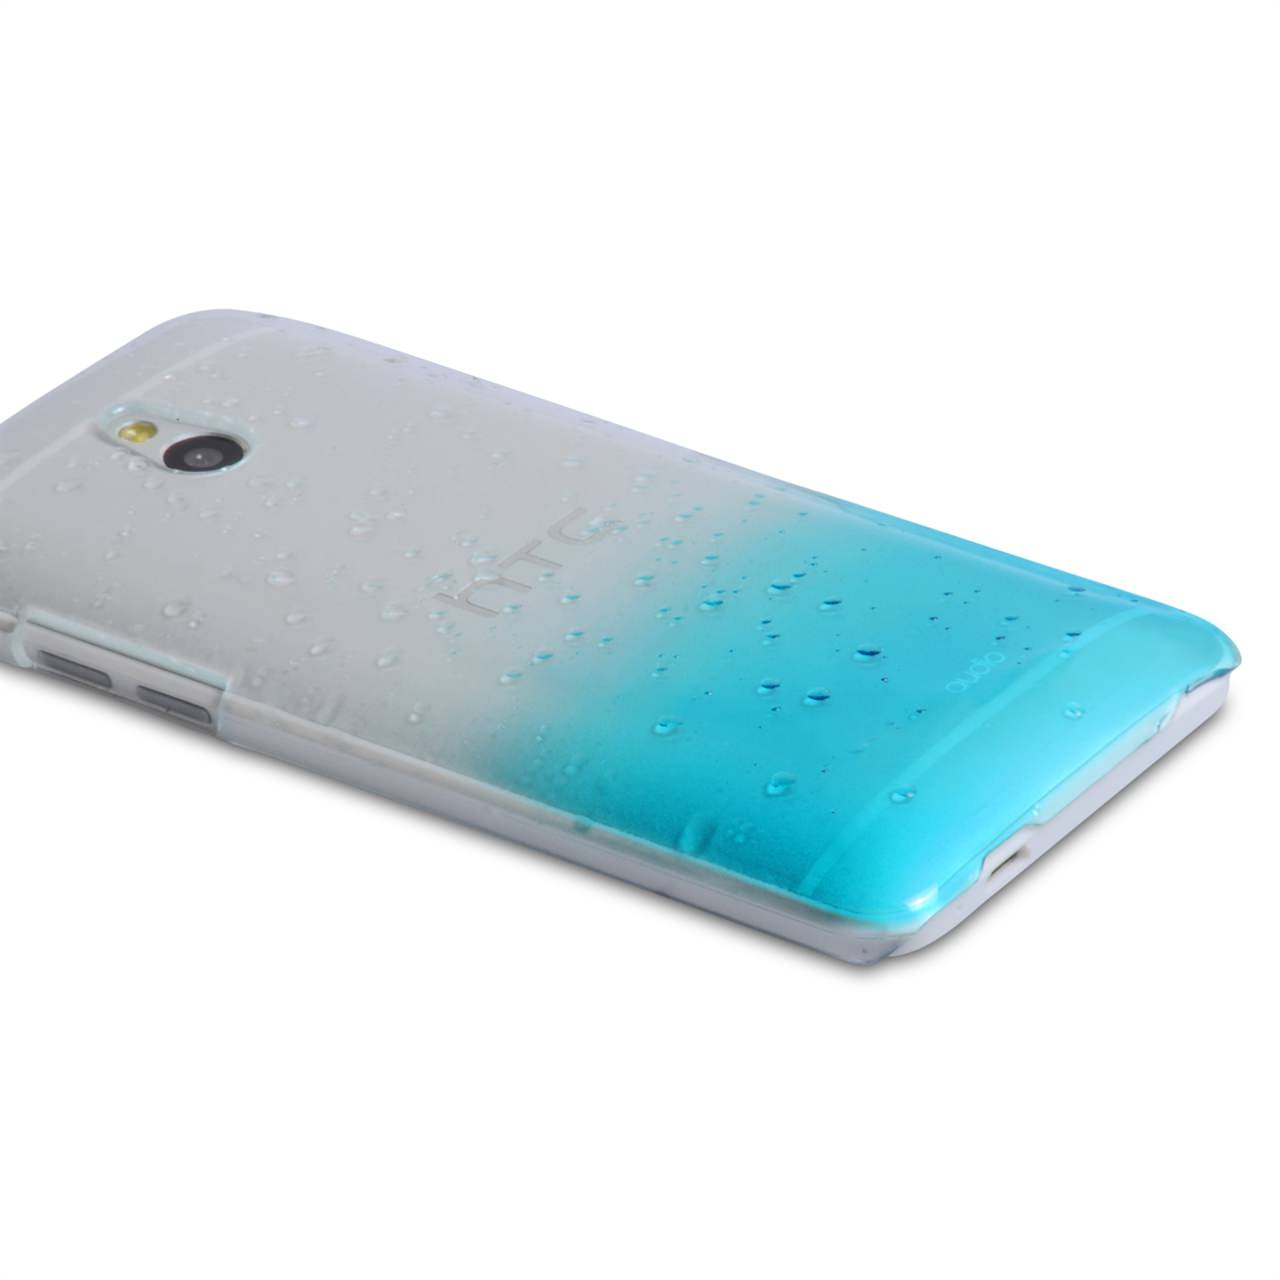 YouSave Accessories HTC ONE Mini Raindrop Hard Case - Blue-Clear